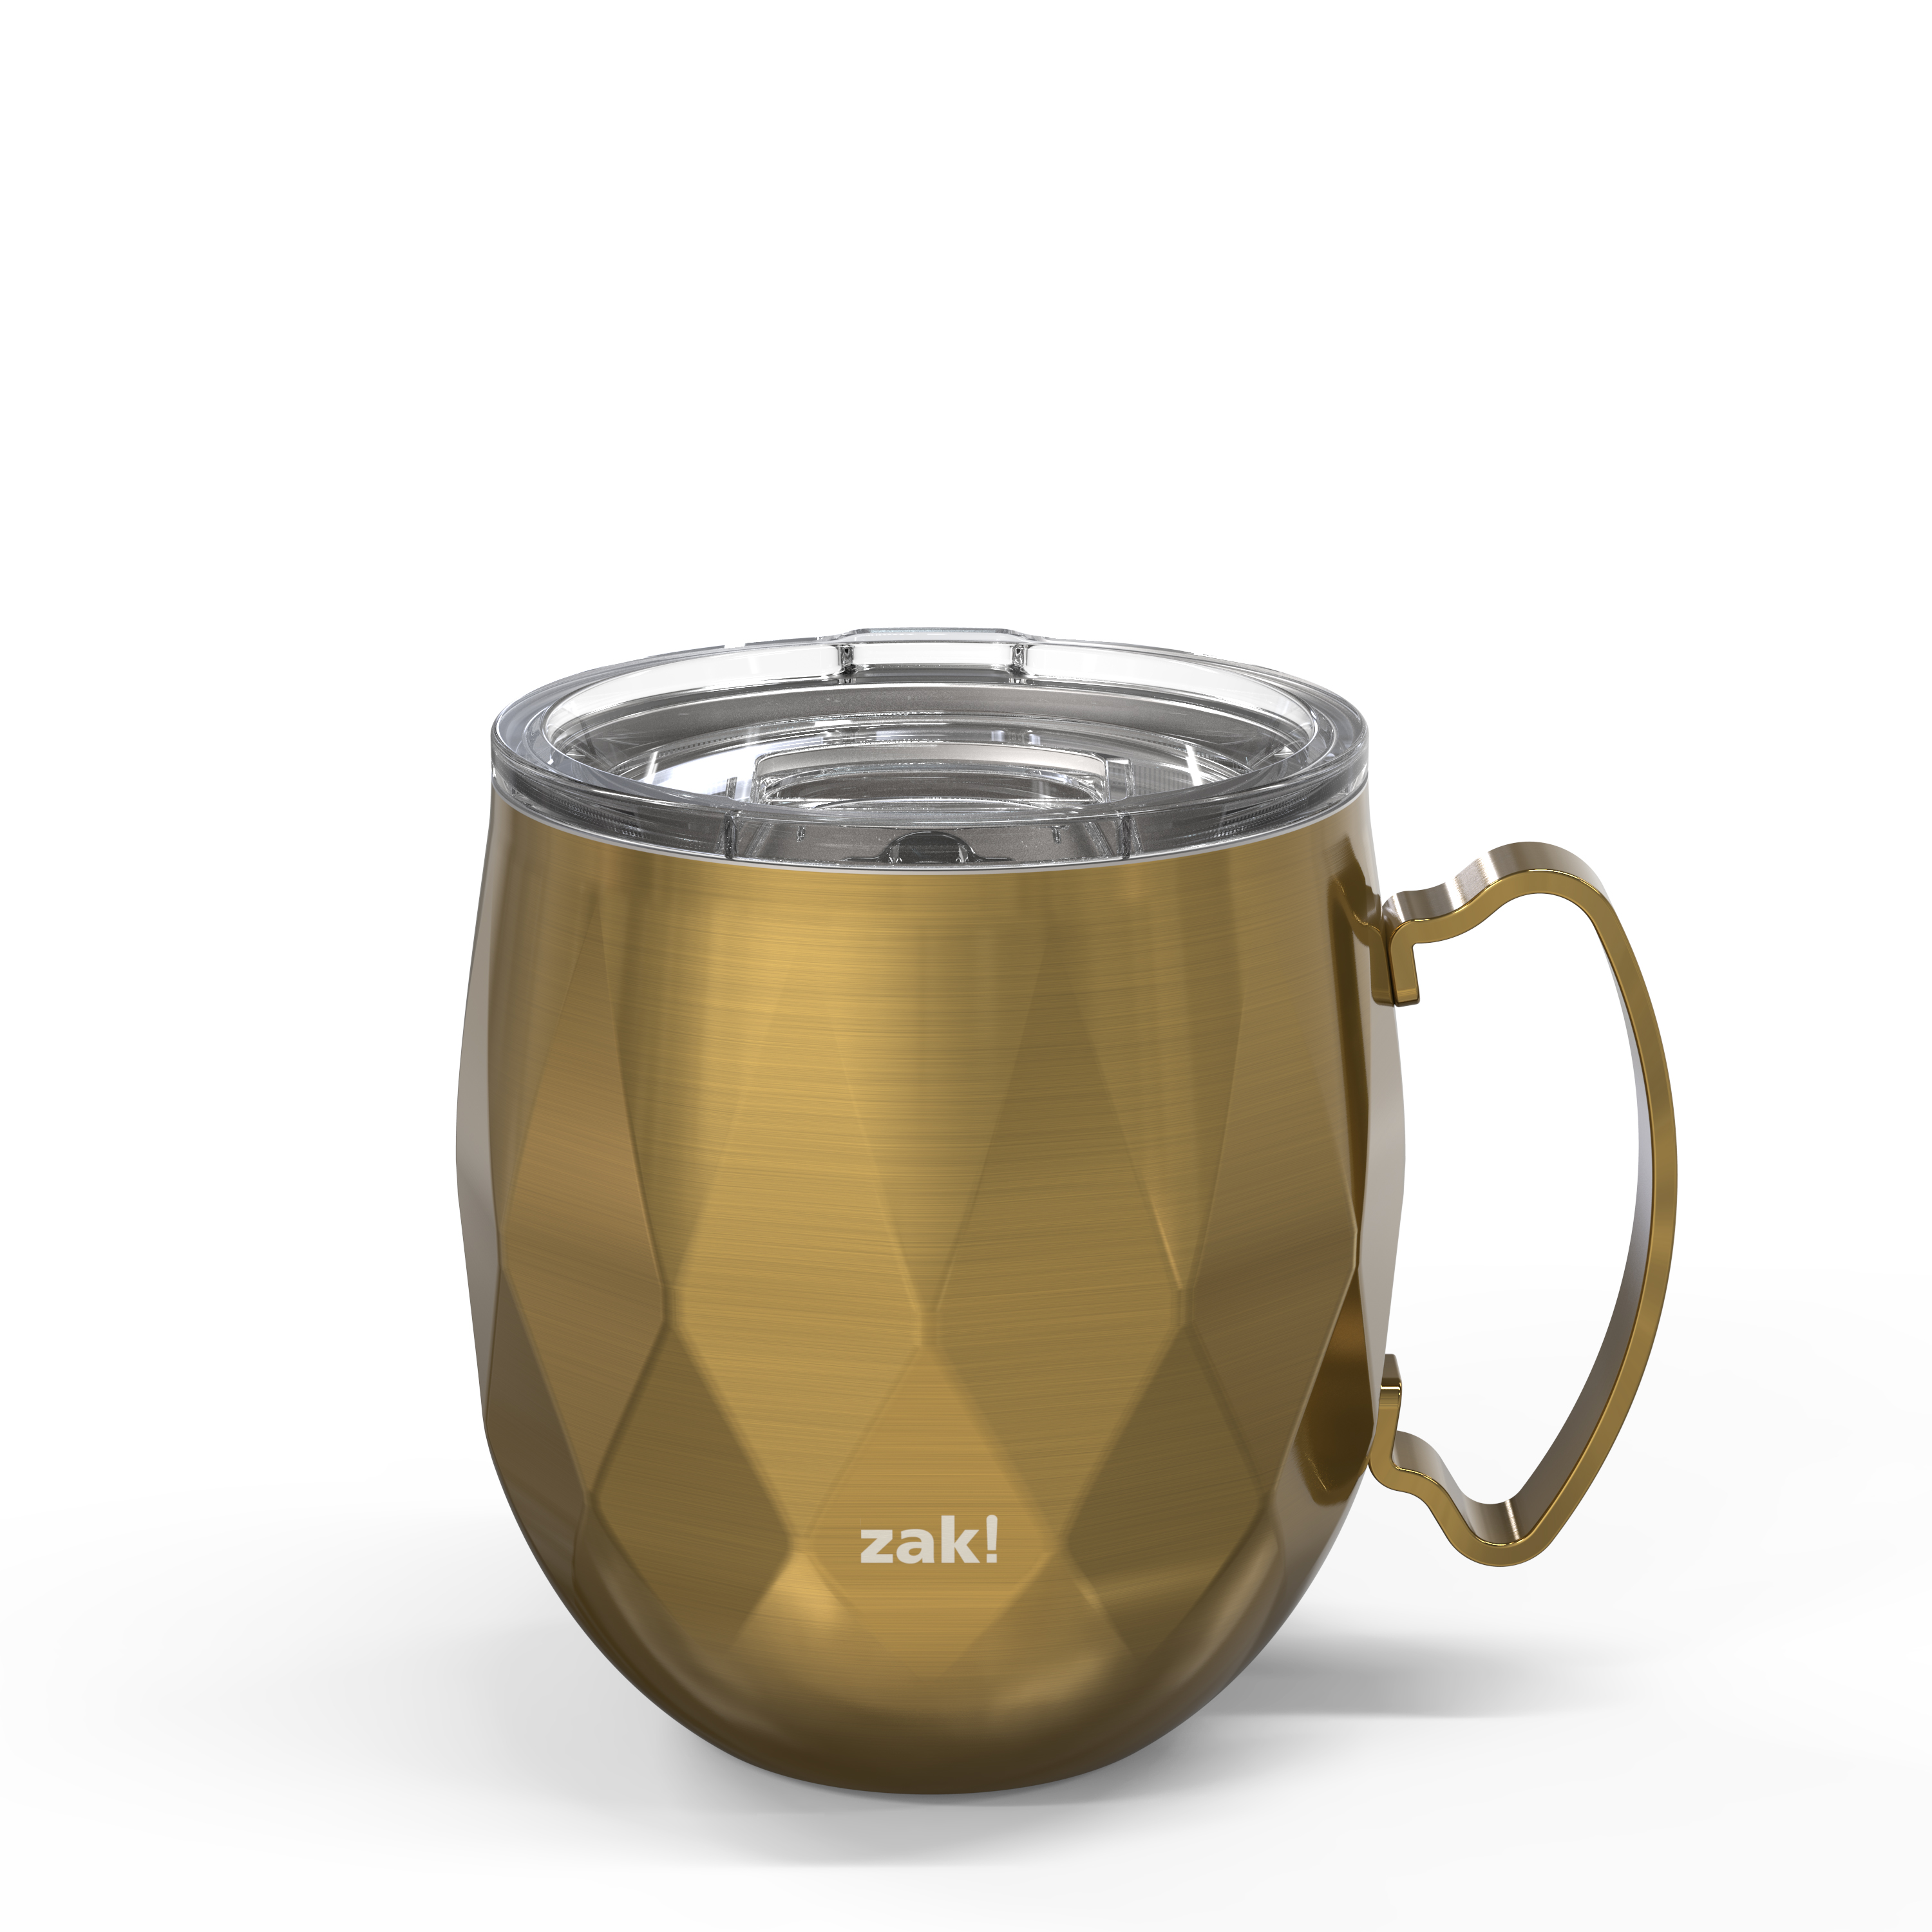 Fractal 19 ounce Vacuum Insulated Stainless Steel Mule Mug, Light Gold slideshow image 1